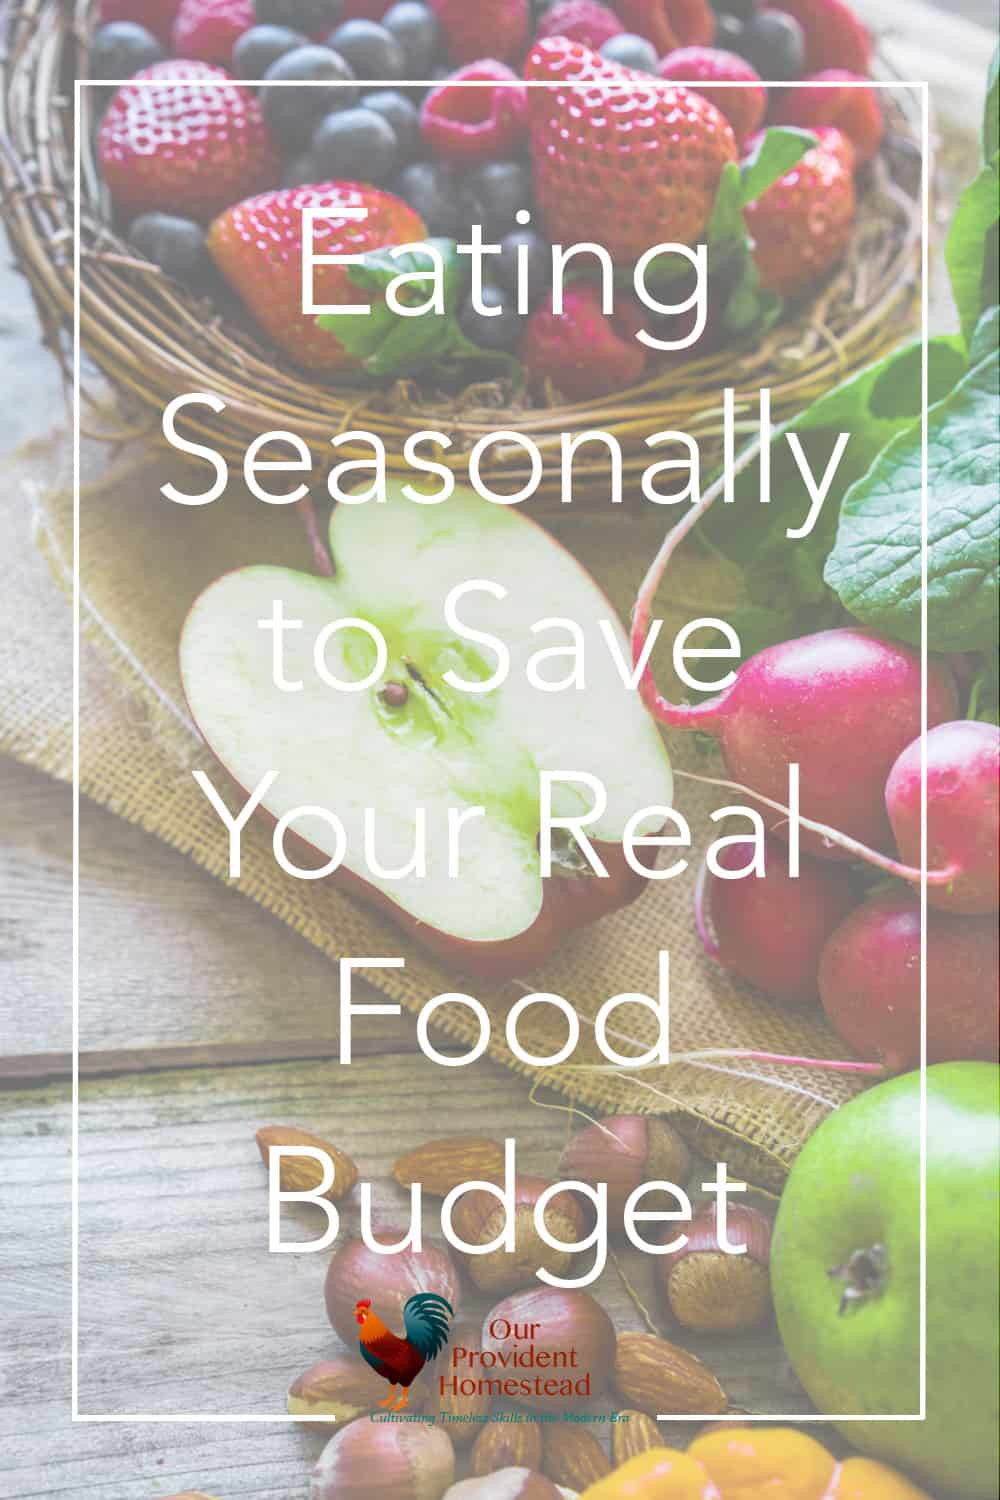 Do you want to cut down on your real food budget? Click now to find out how eating seasonally can help your grocery budget today! Real Food Budget | Eating Seasonally | Grocery Tips